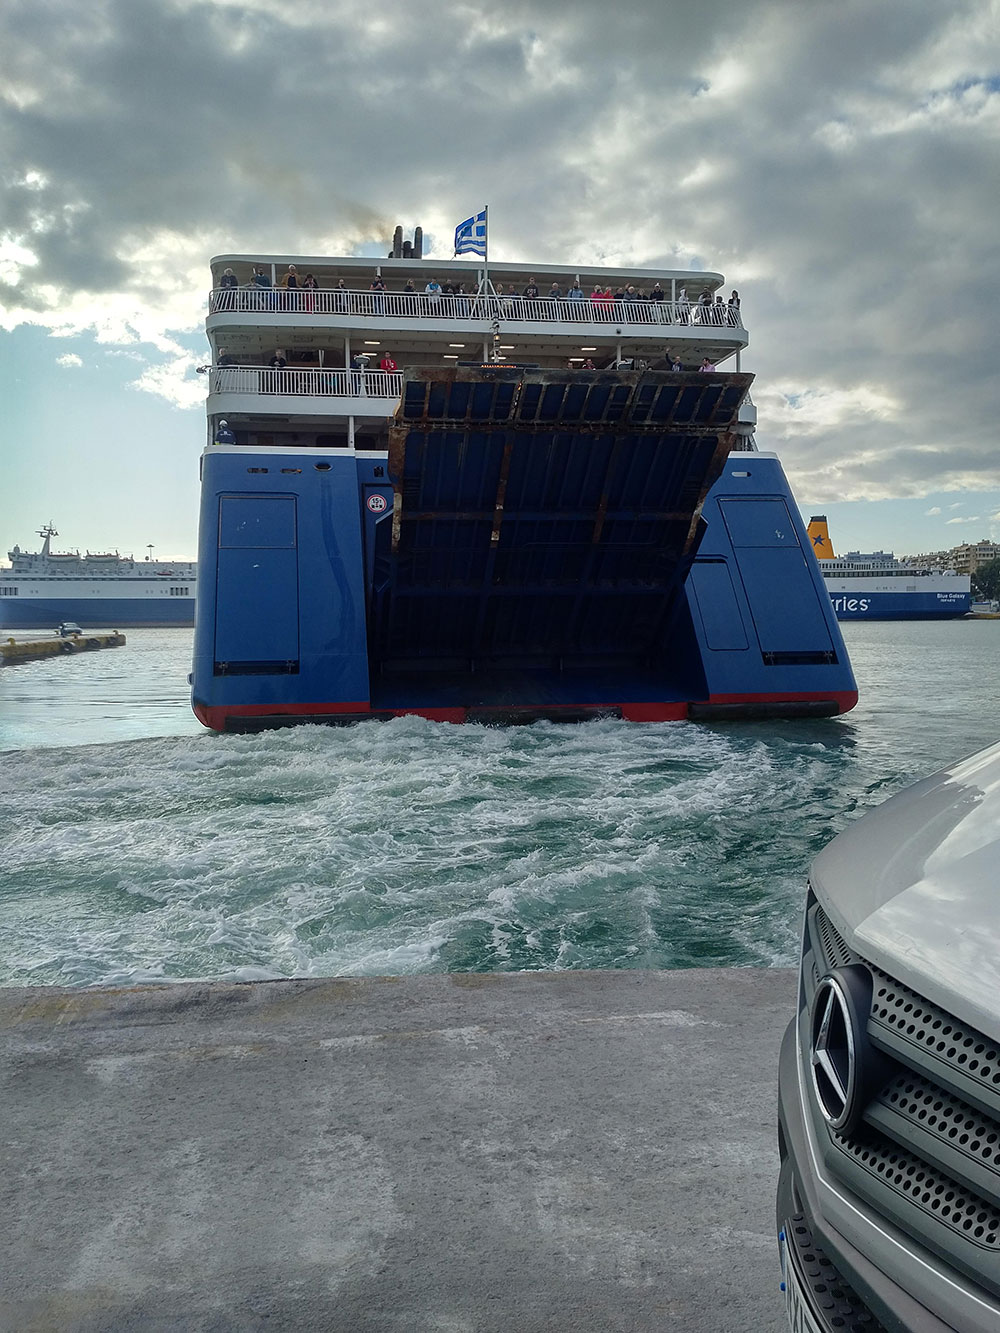 Finley and his family were due to catch this ferry from Athens to Naxos, but were just too late